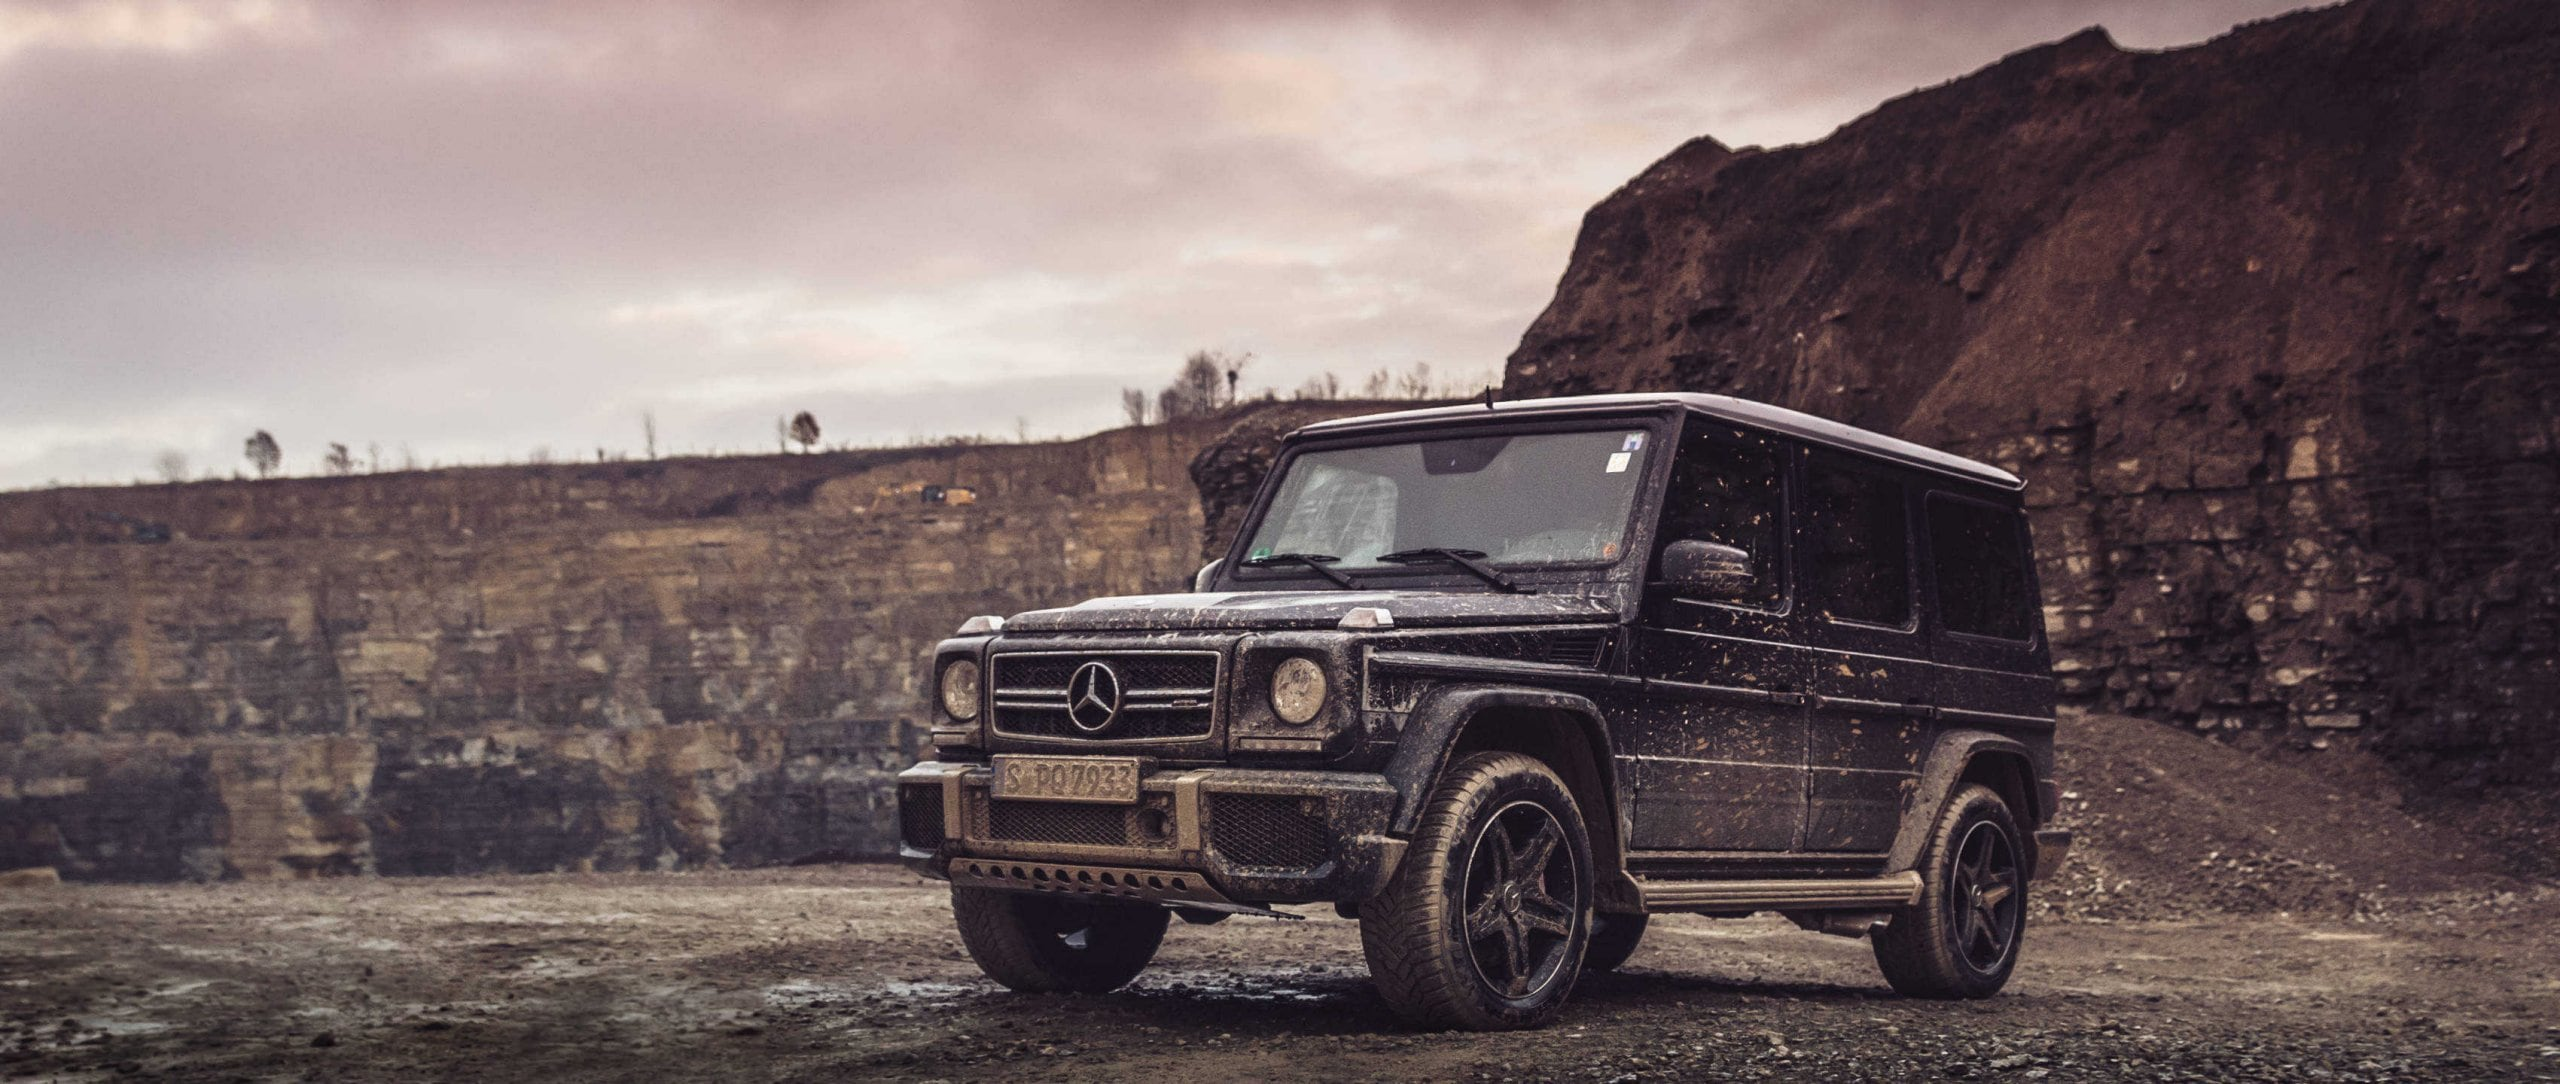 Mercedes-AMG G 63 (W 463): full view in the stone quarry.